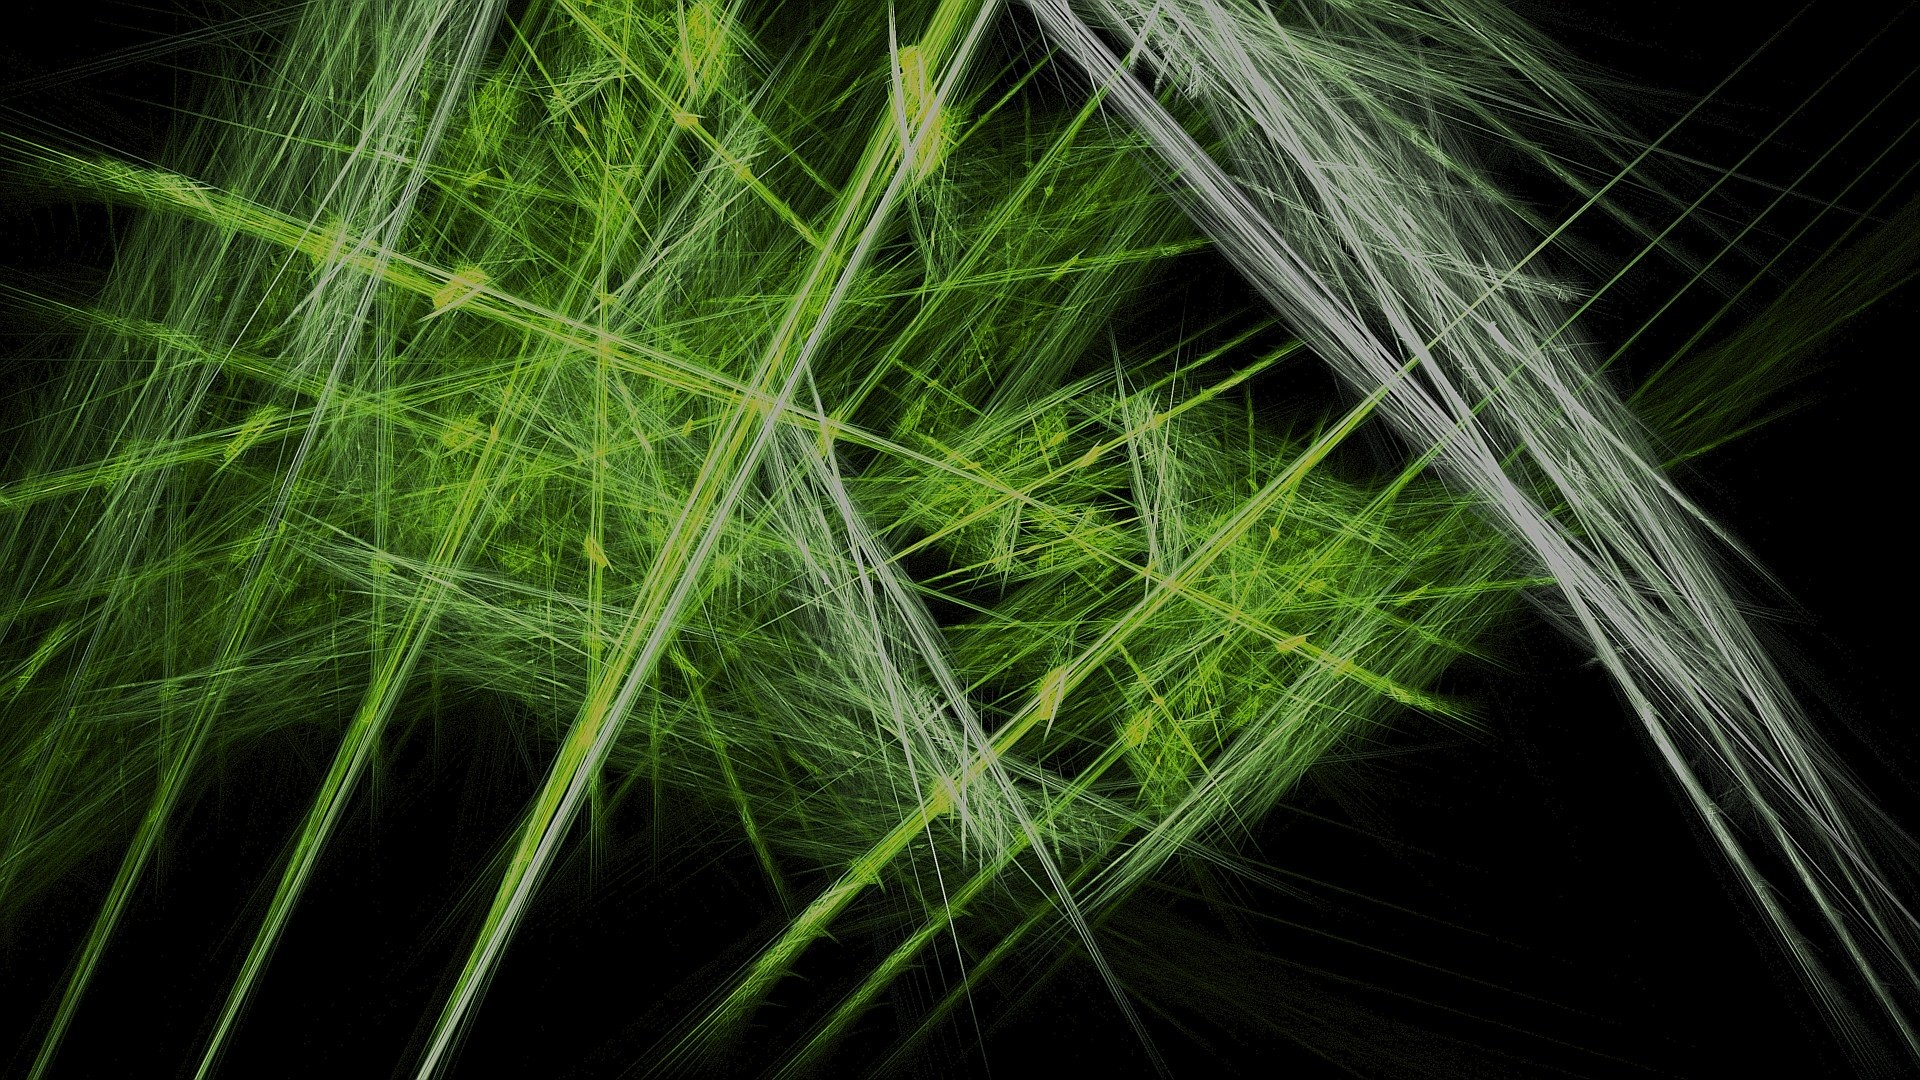 abstract black background fractal green lines 4k full hd iphone .